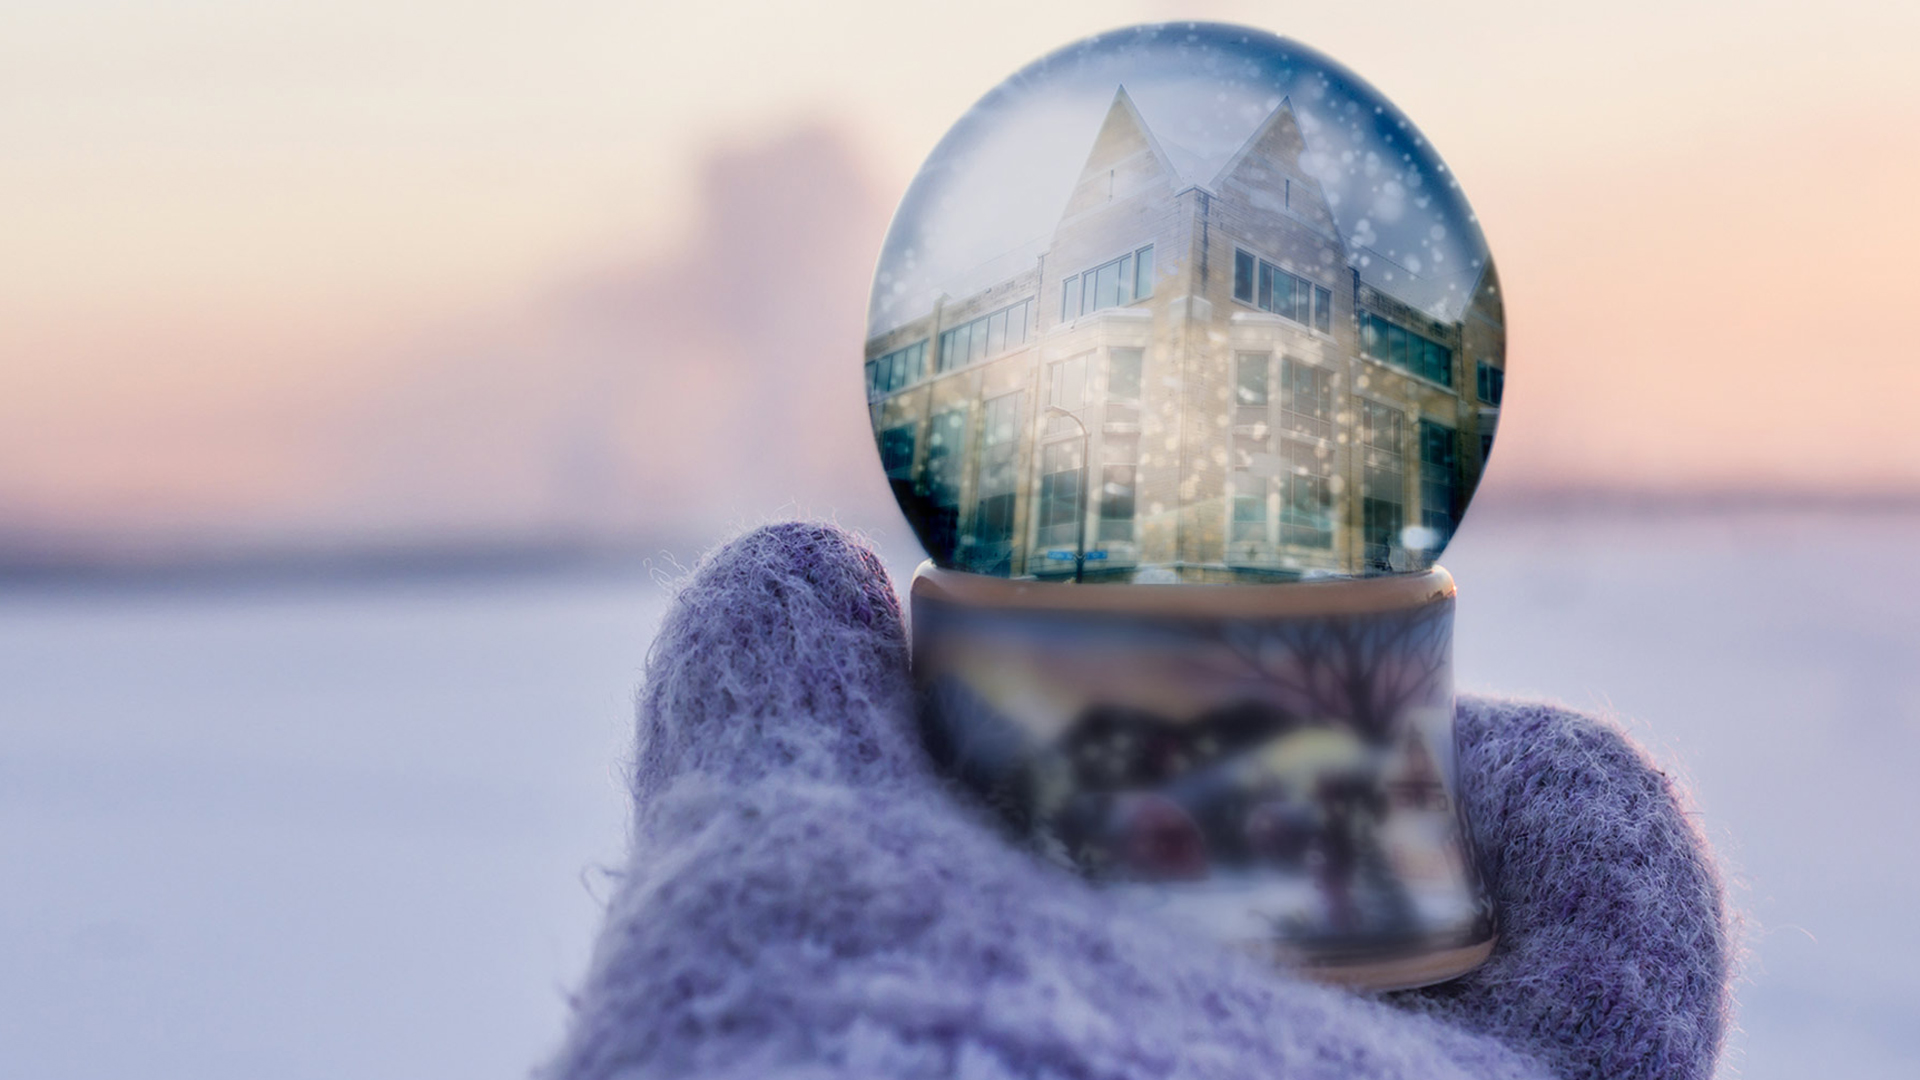 A snow globe reflecting the University of St. Thomas